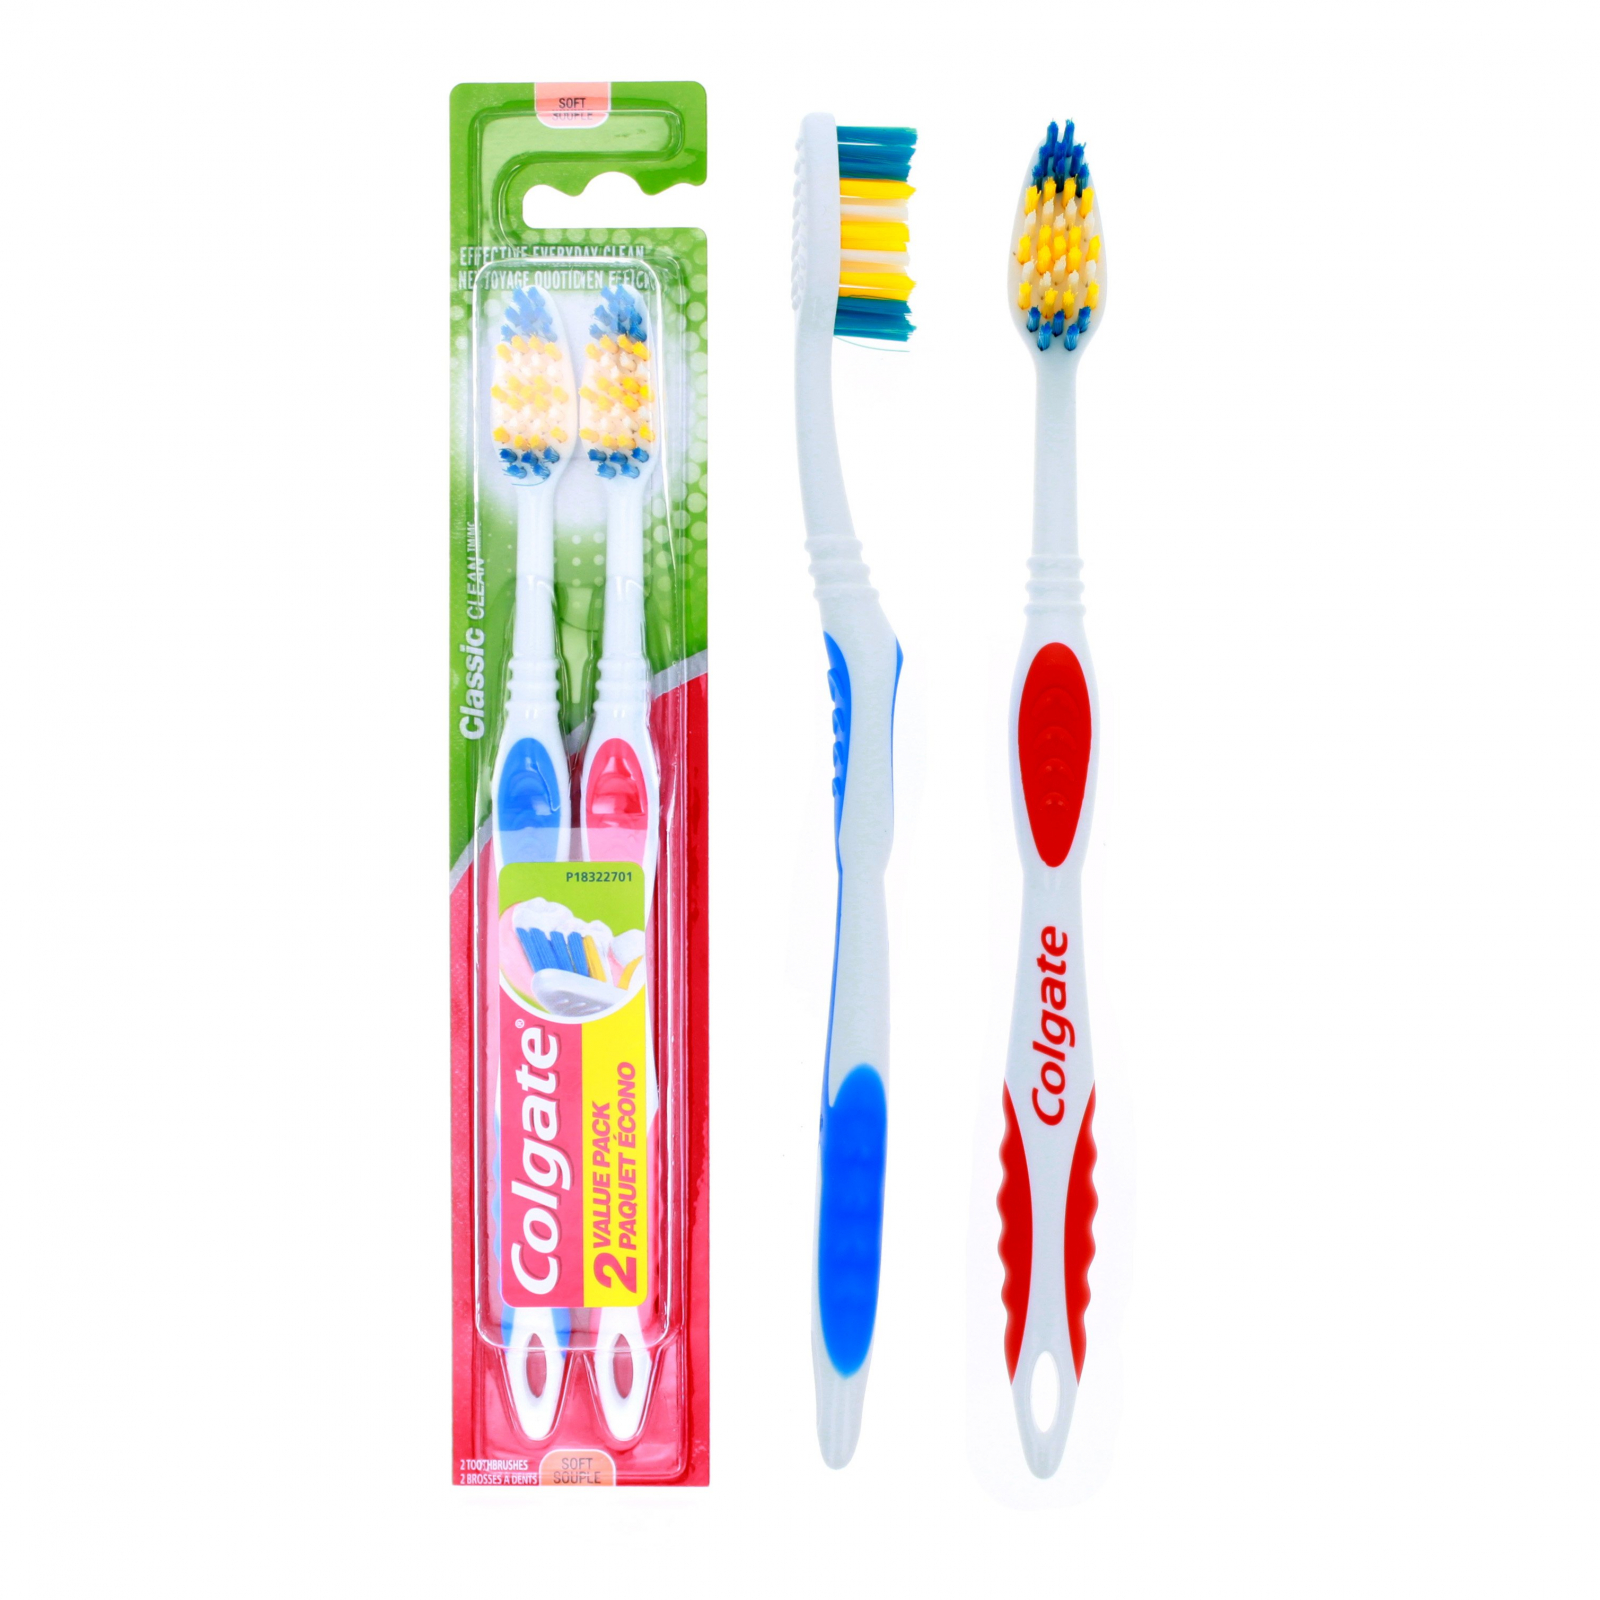 Colgate Toothbrush and Tongue Cleaner 2 Pack Soft Bristles